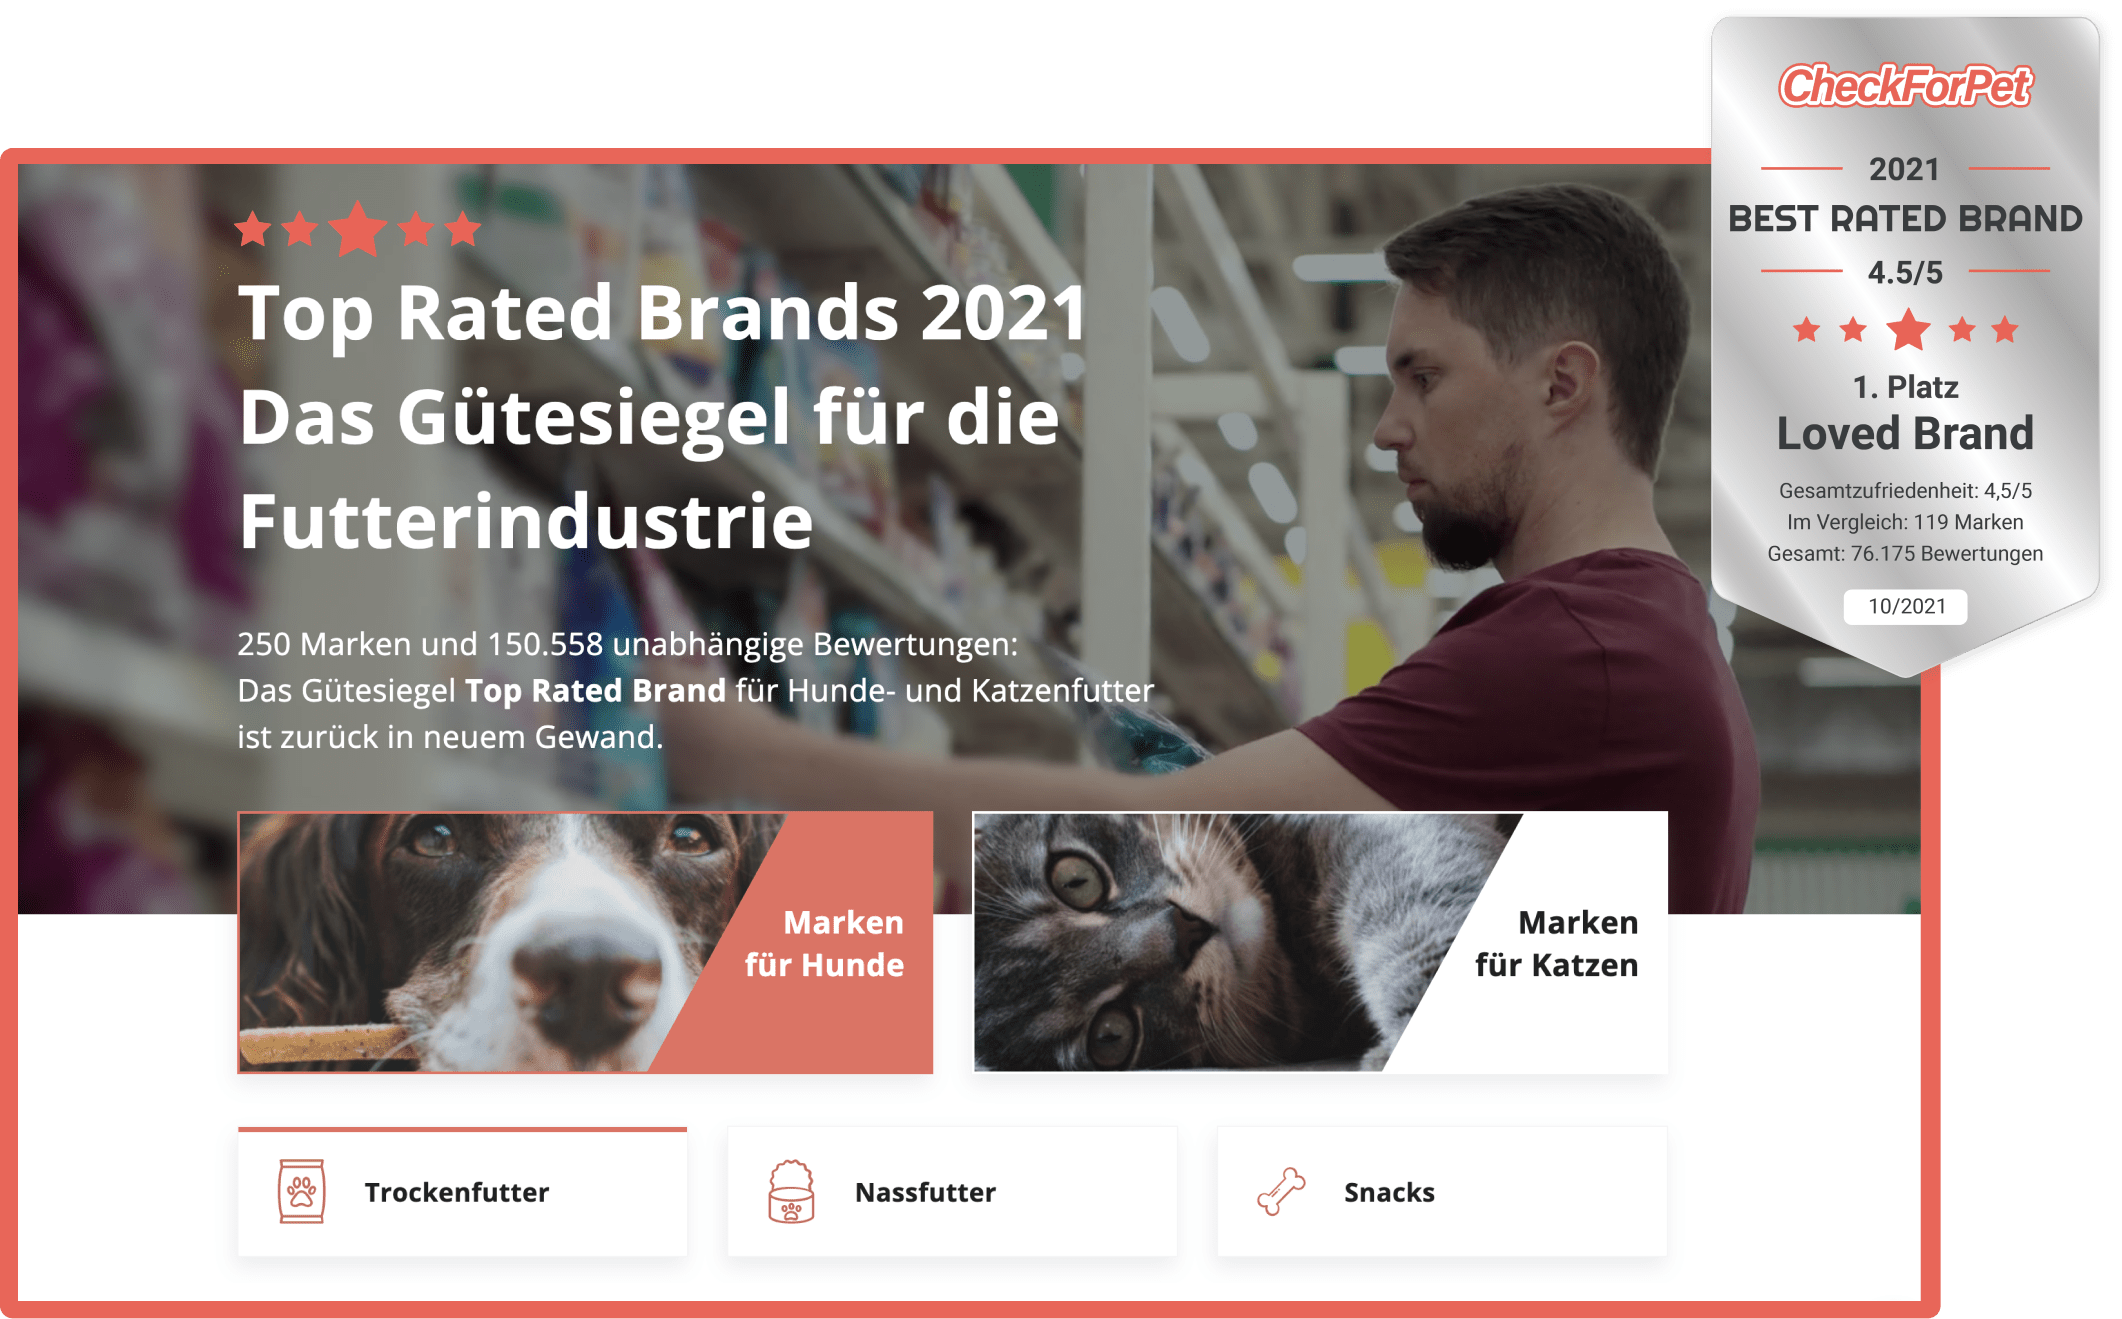 TOP RATED BRANDS 2021